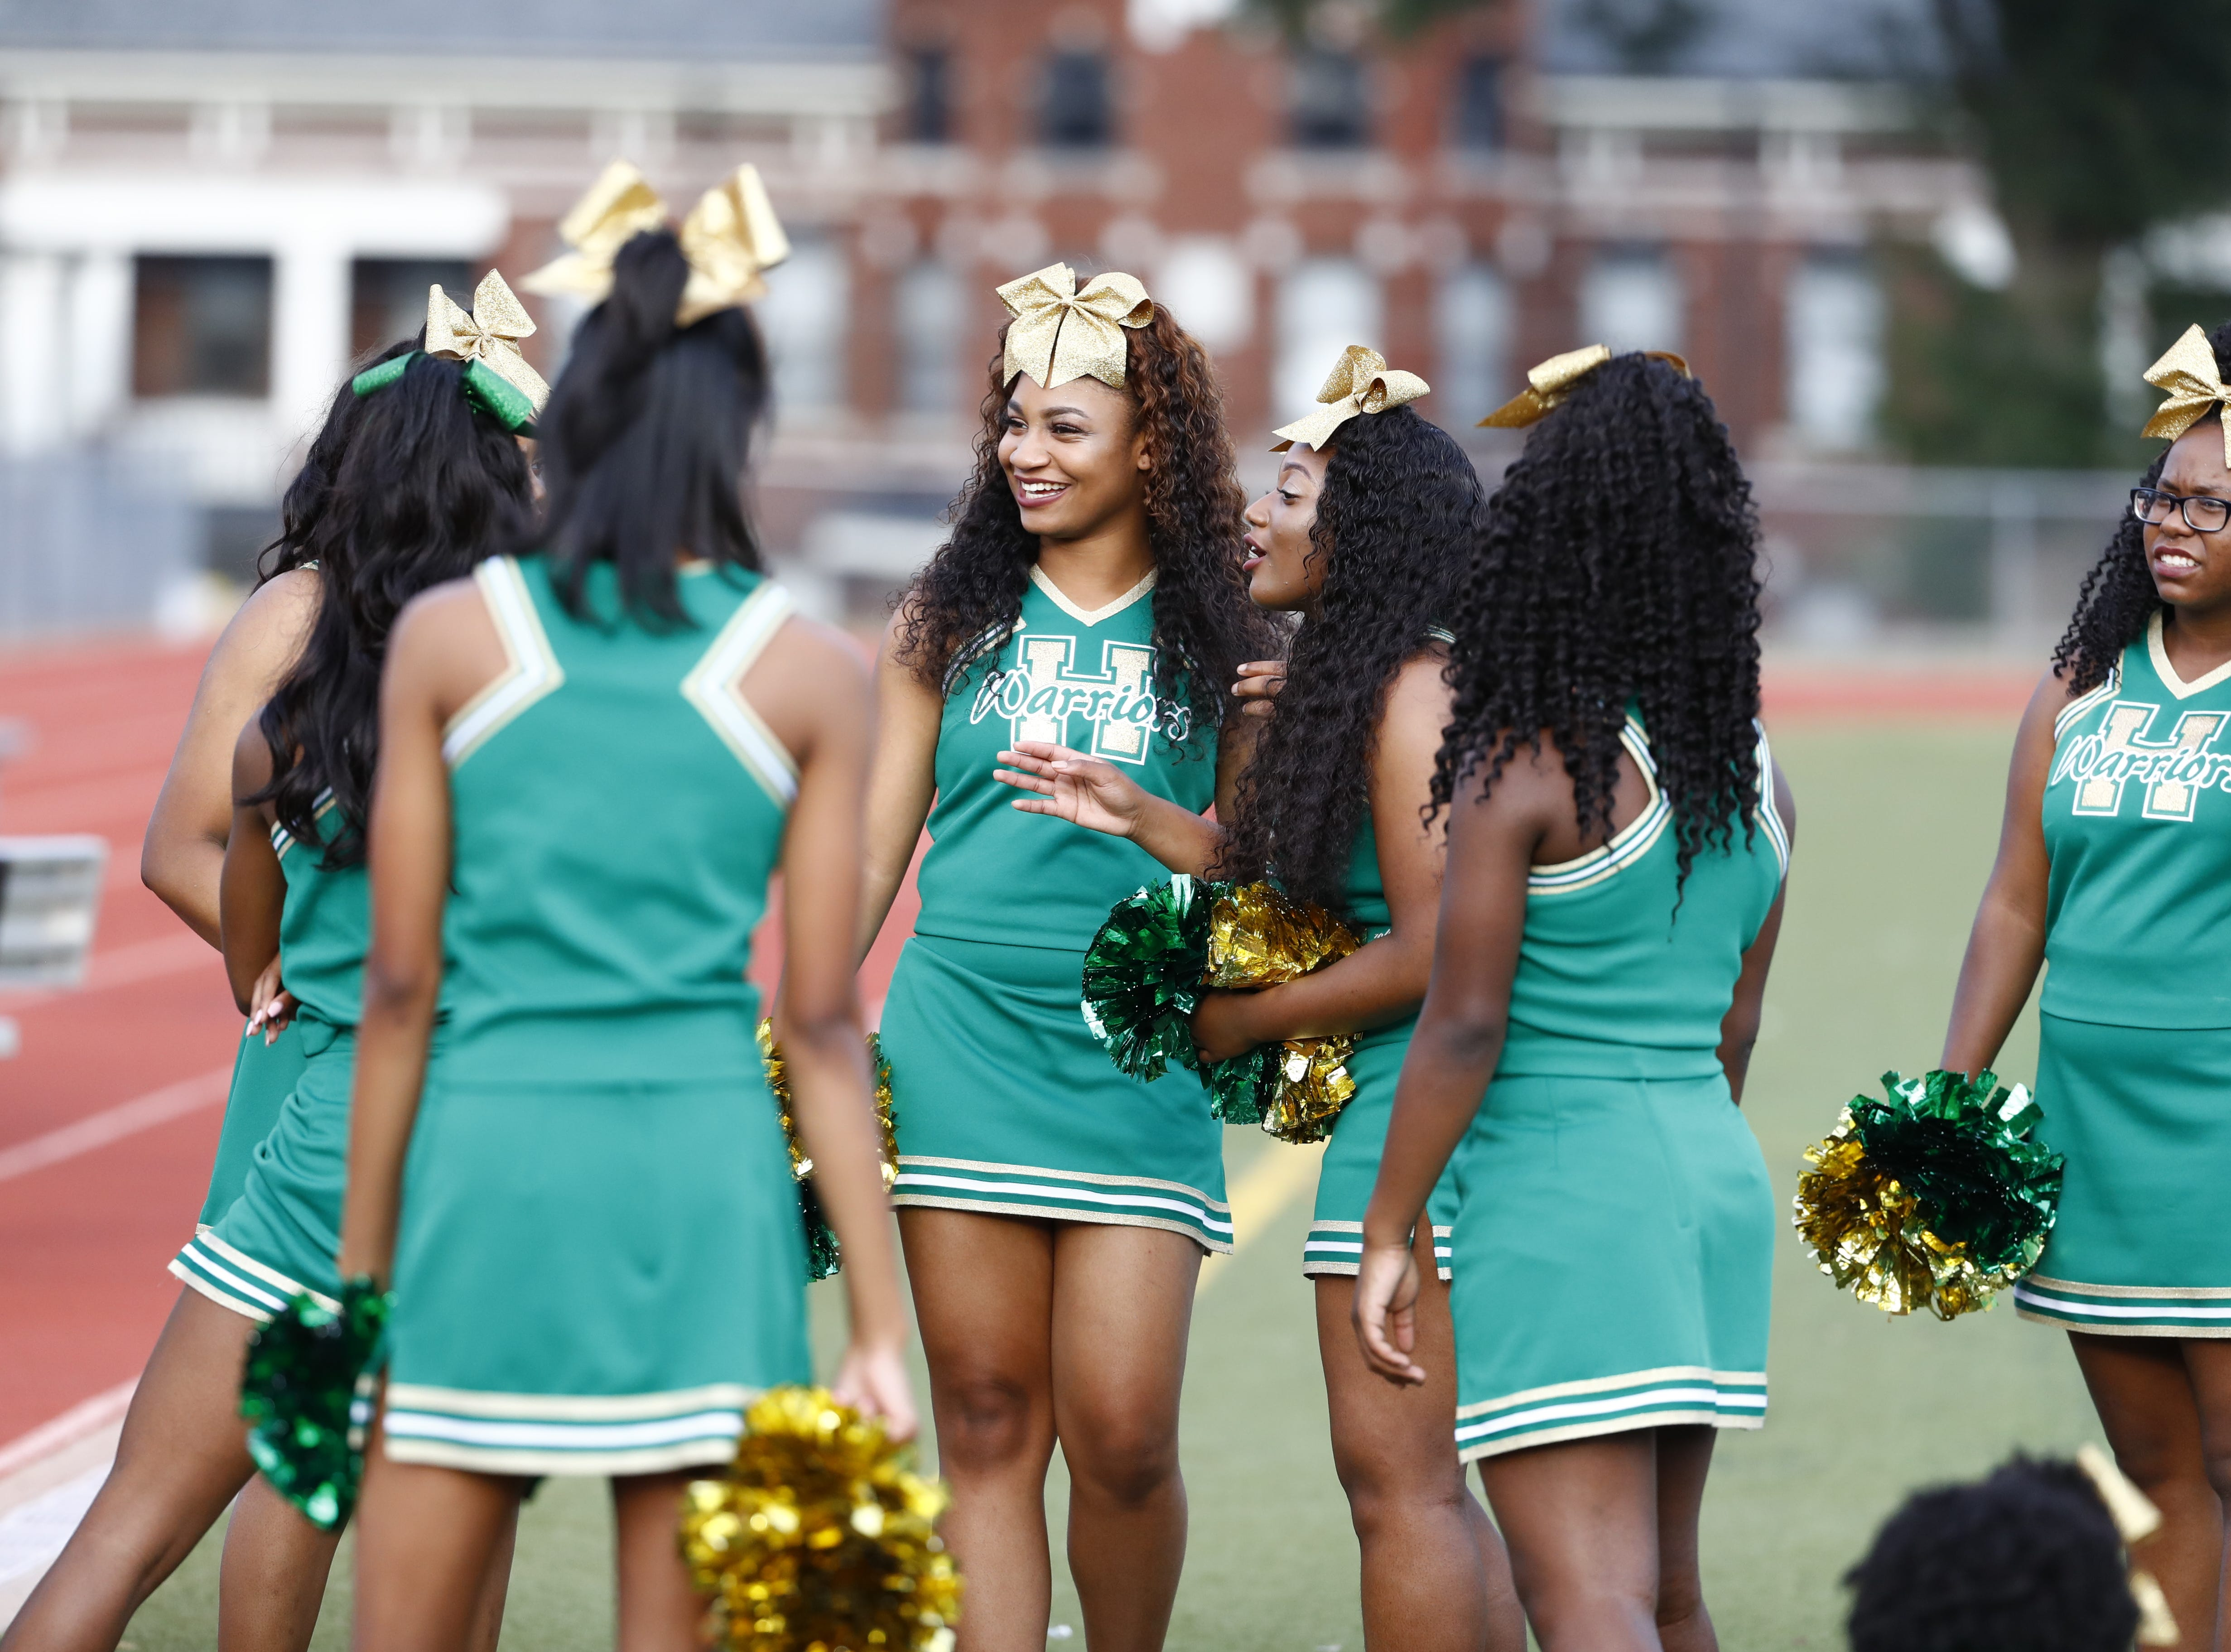 Central cheerleaders gather before Friday's season-opening football game against Melrose on Aug. 17, 2018.